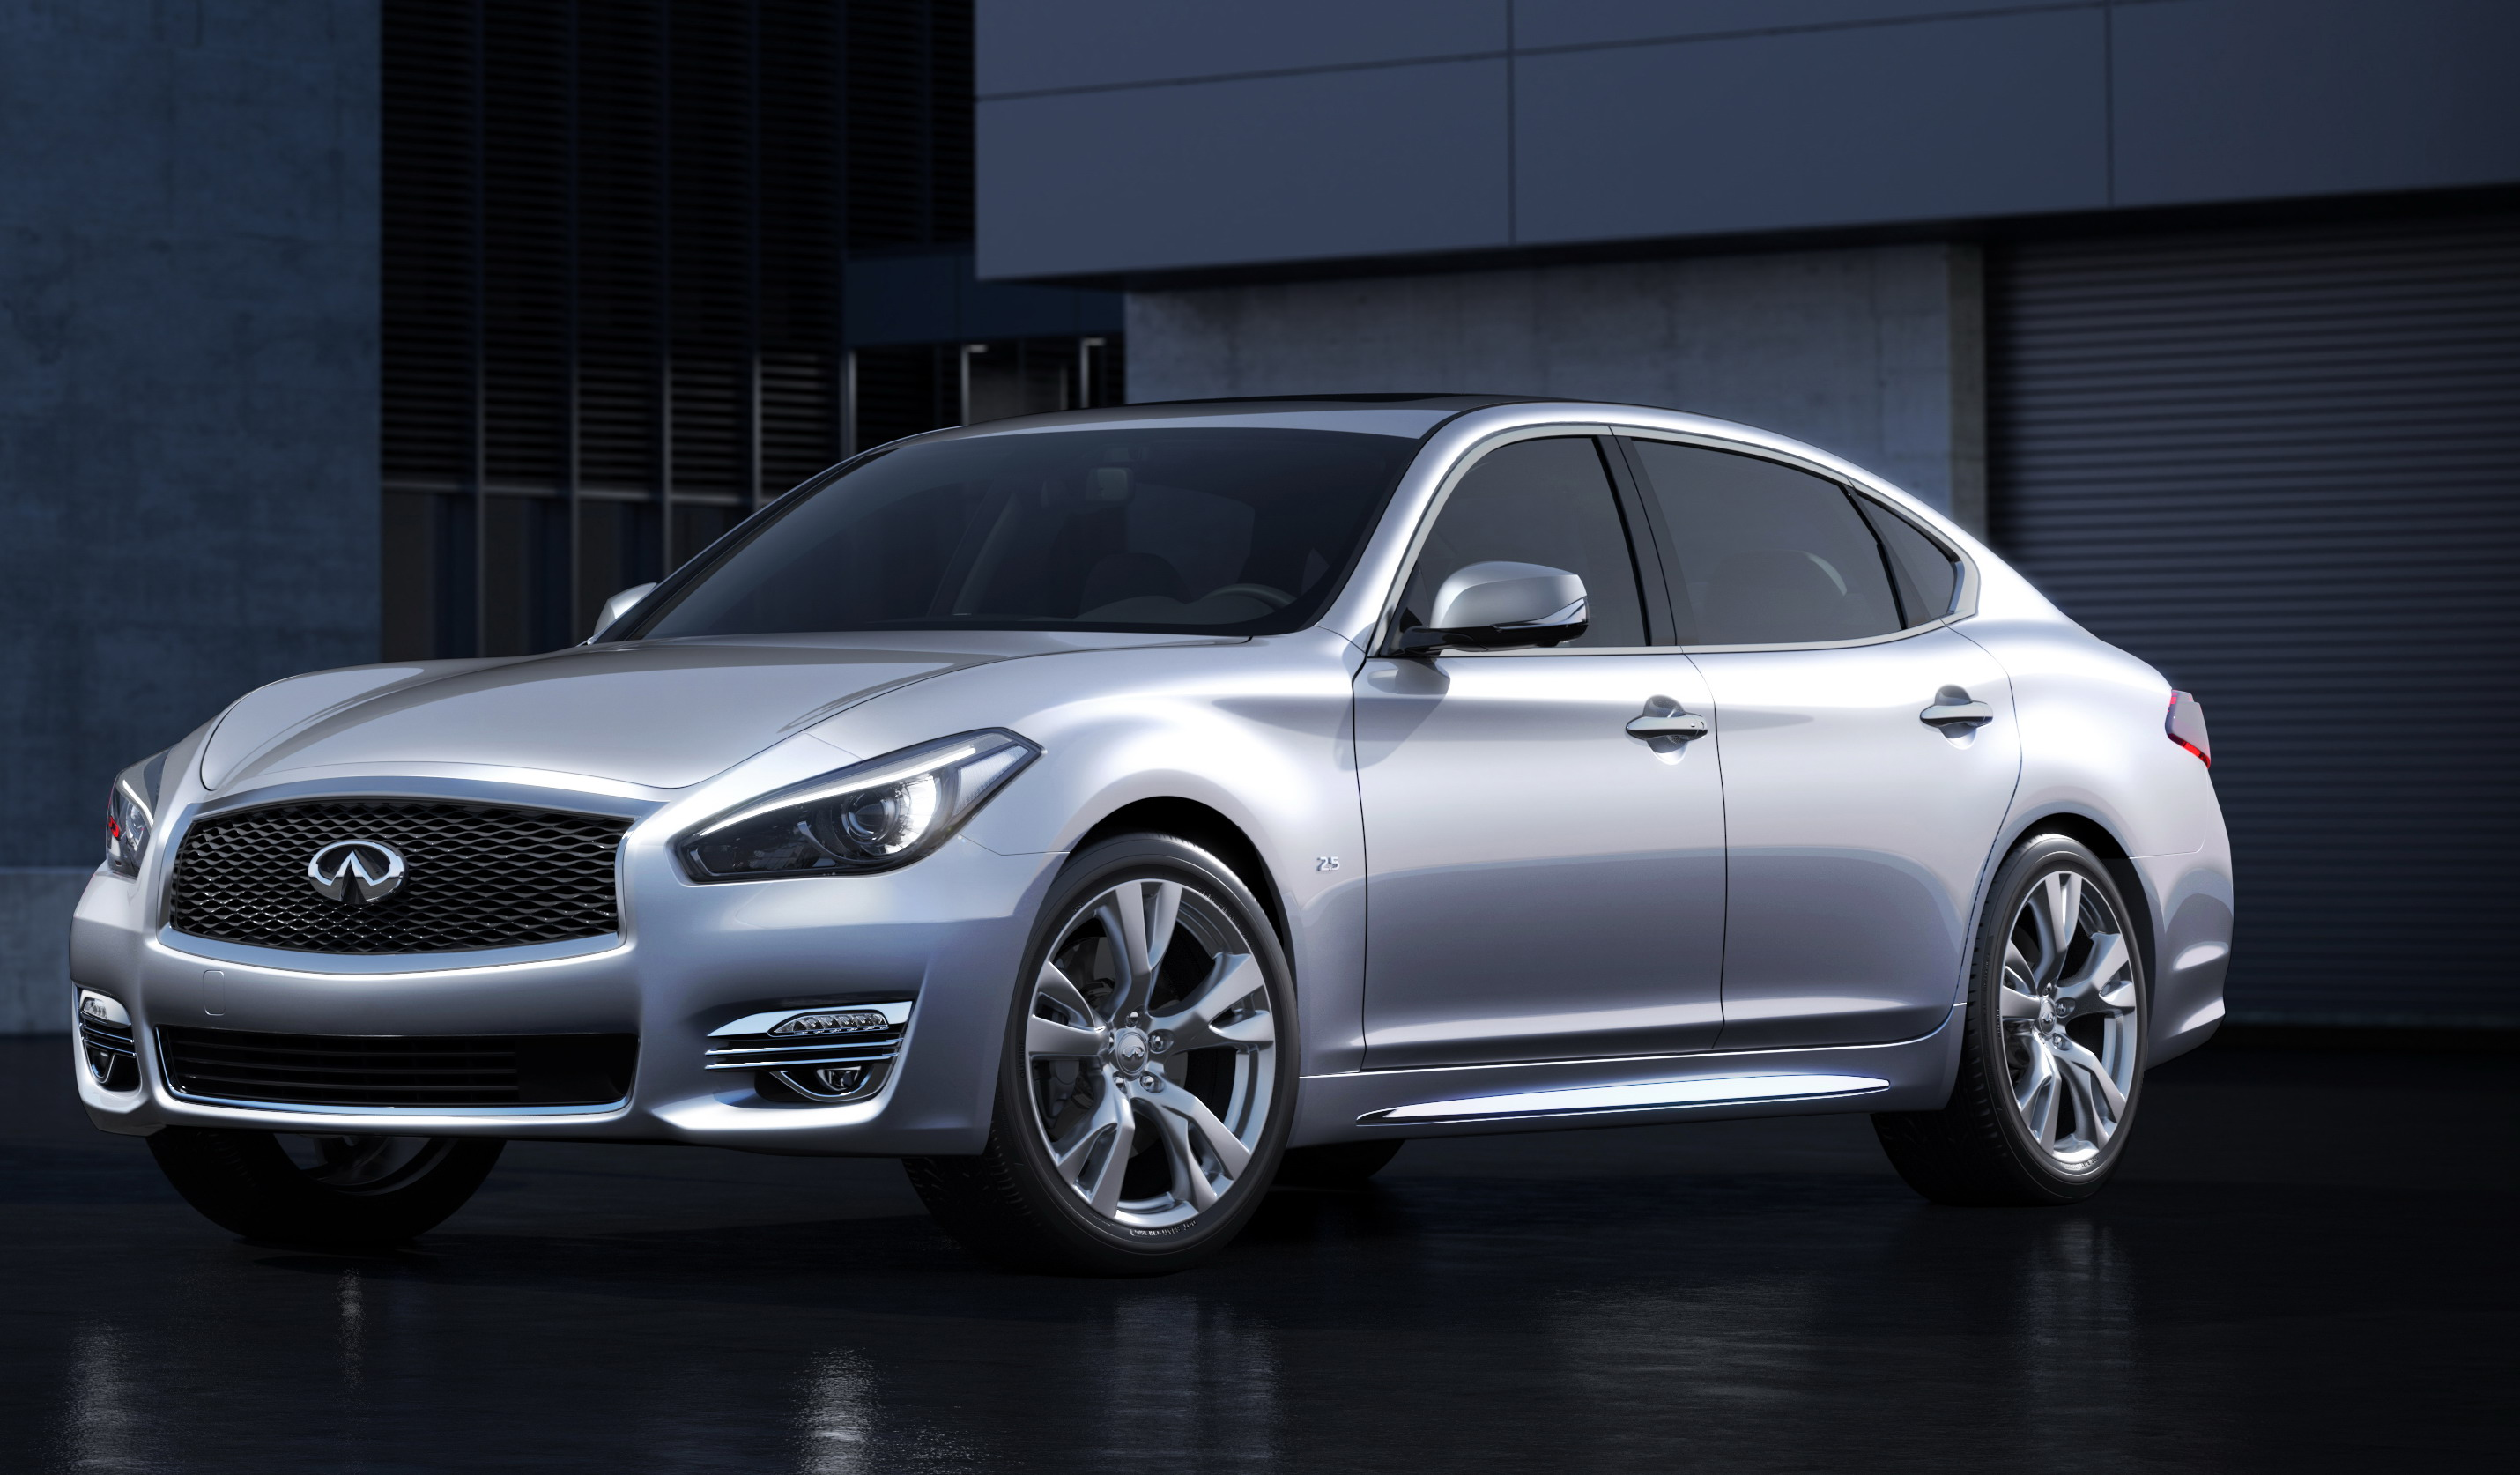 notes l infiniti occupying article horsepower segment with car infinity price review photo luxury mid and reviews sedan netherworld awd